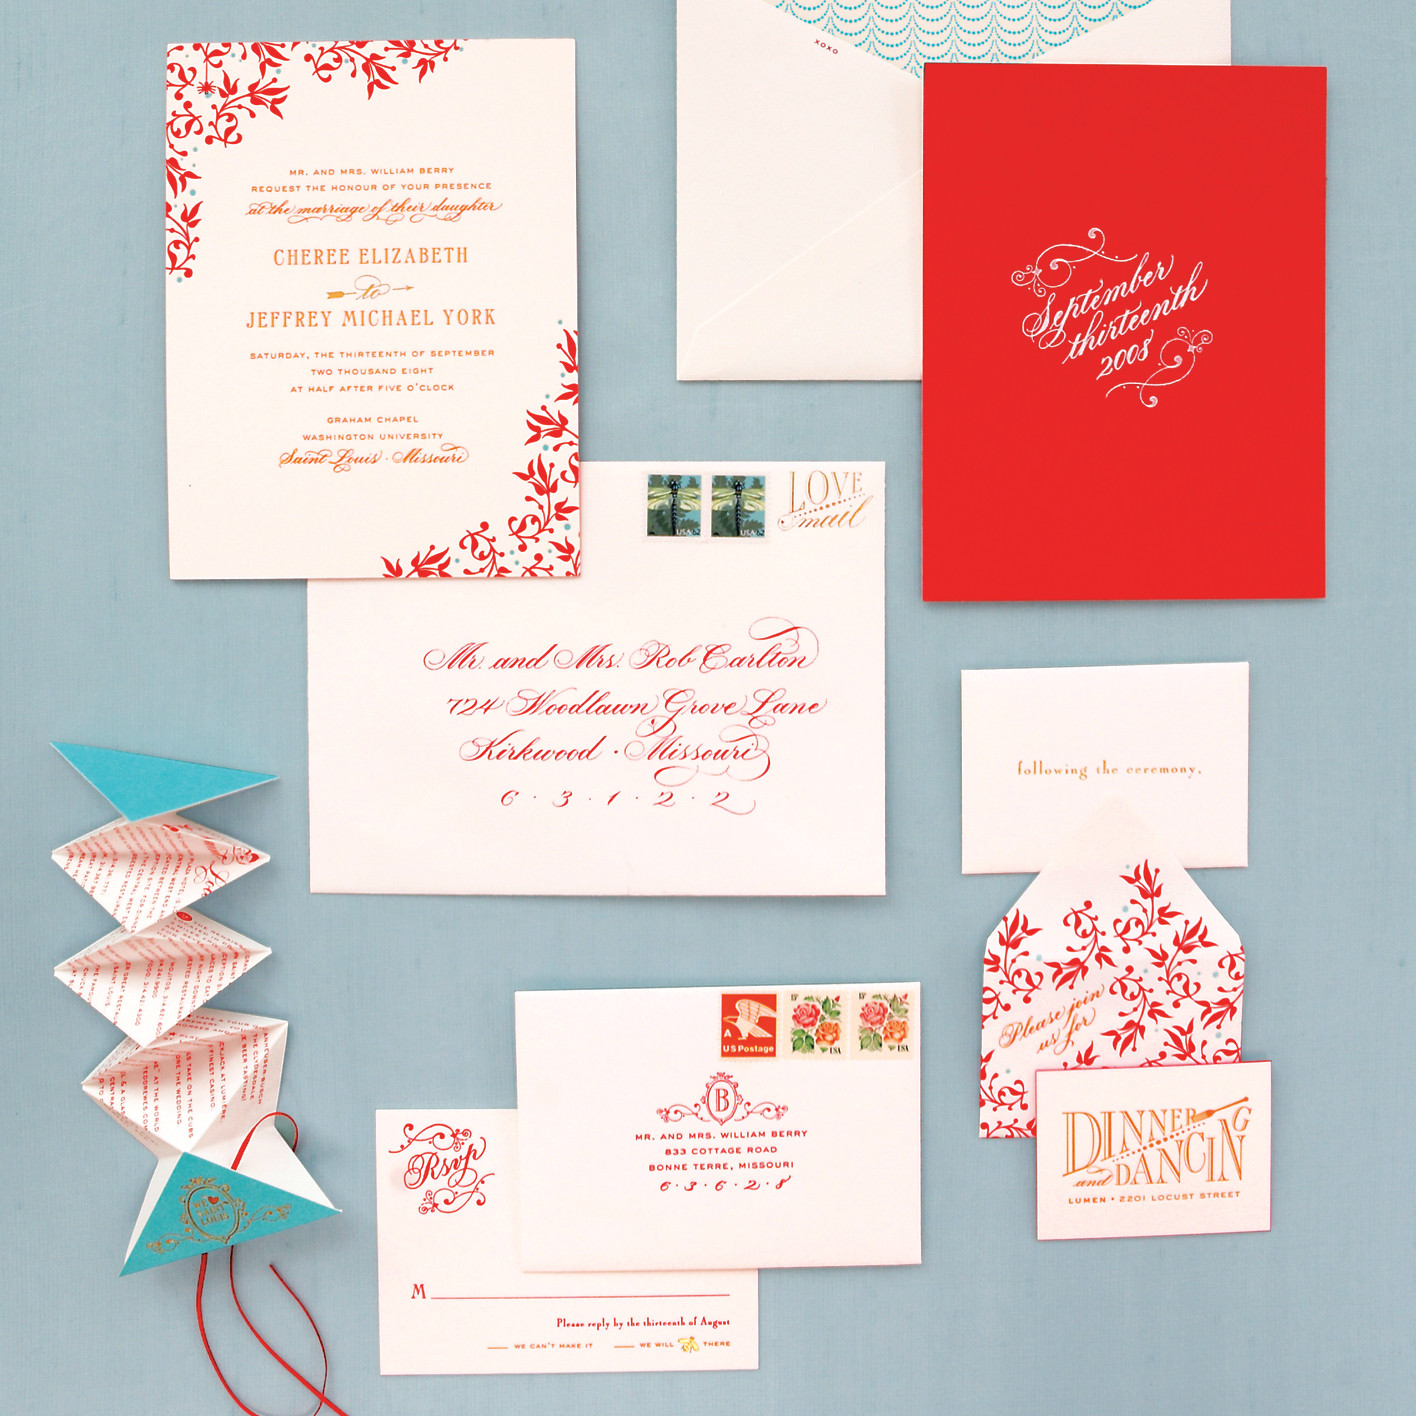 how to address wedding invitation envelopes wedding invitations envelopes How to Create Fun But Classic Wedding Invitations